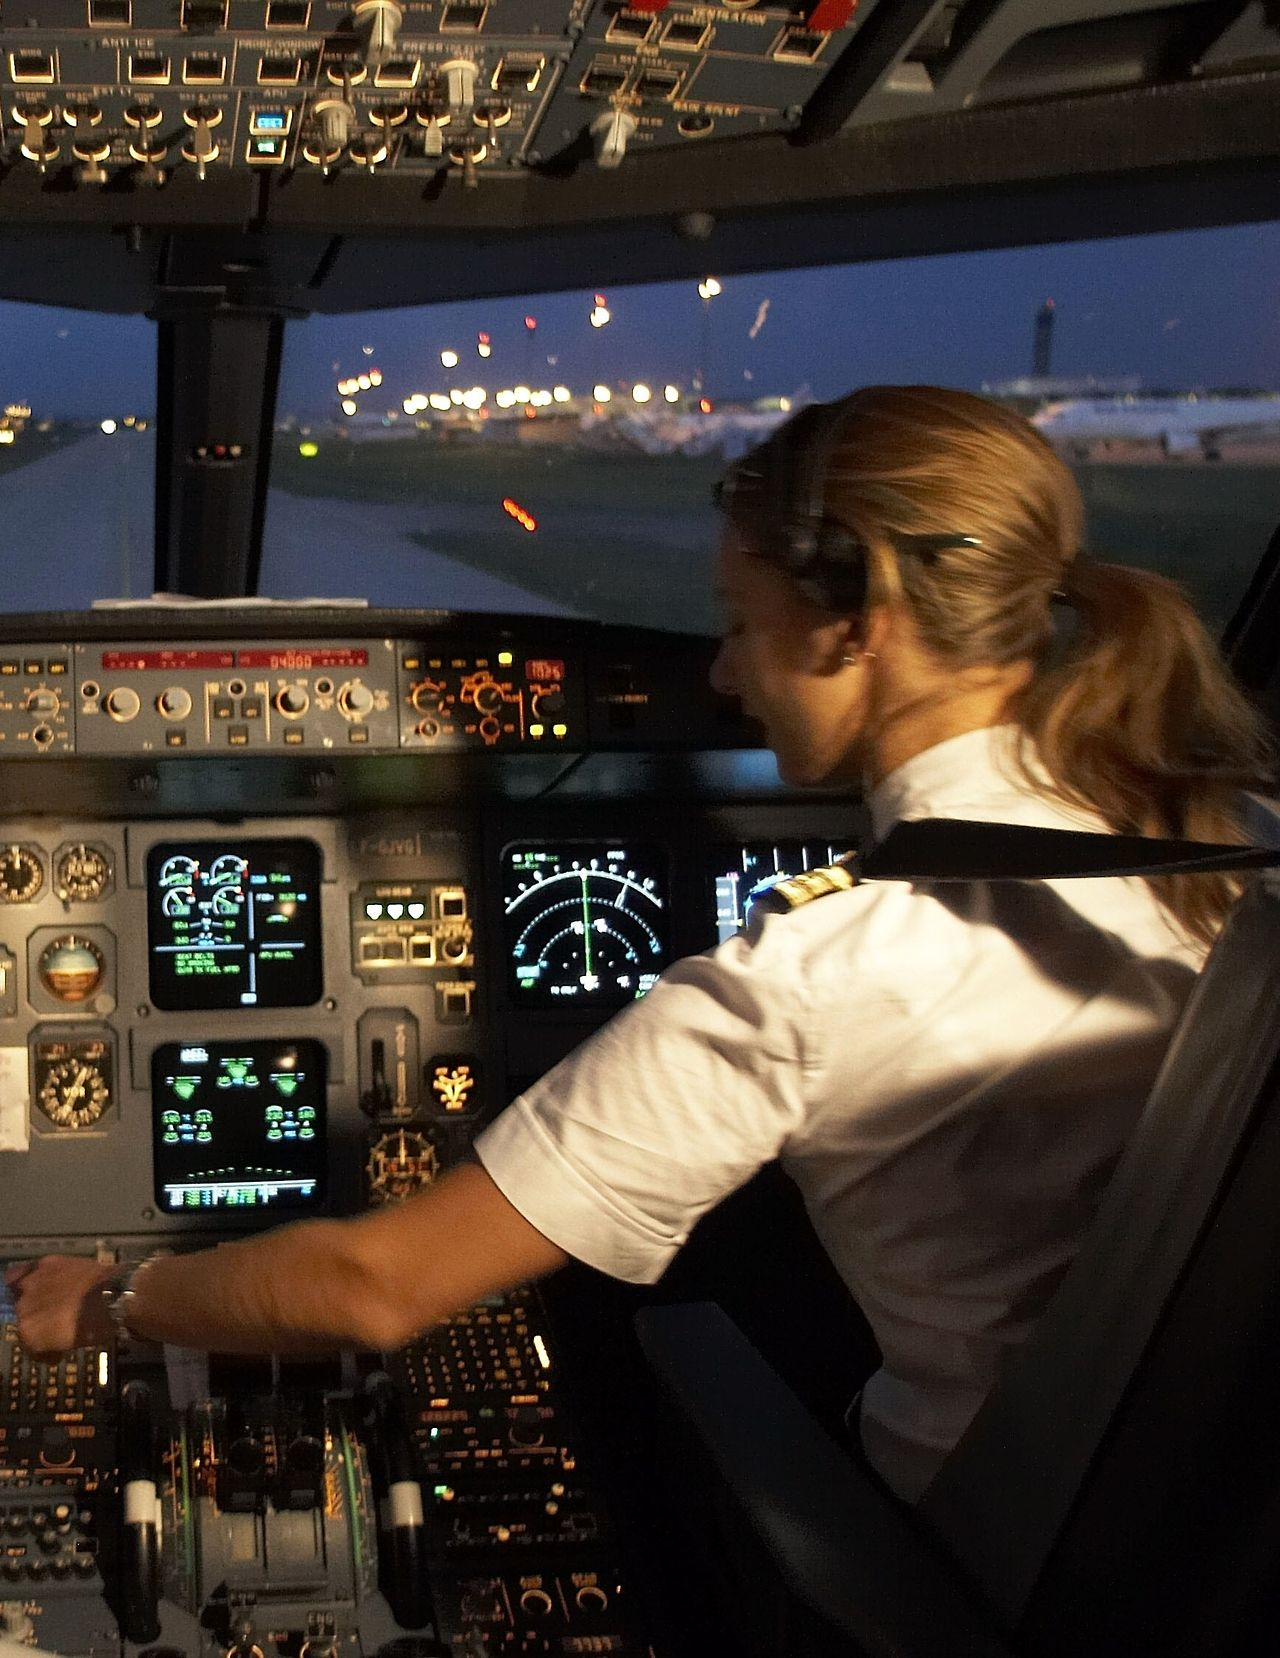 Pin By Joanne Doyle On MY YEARS AS A FLT ATT Pinterest - Airline captain takes amazing photos from his cockpit and no theyre not photoshopped